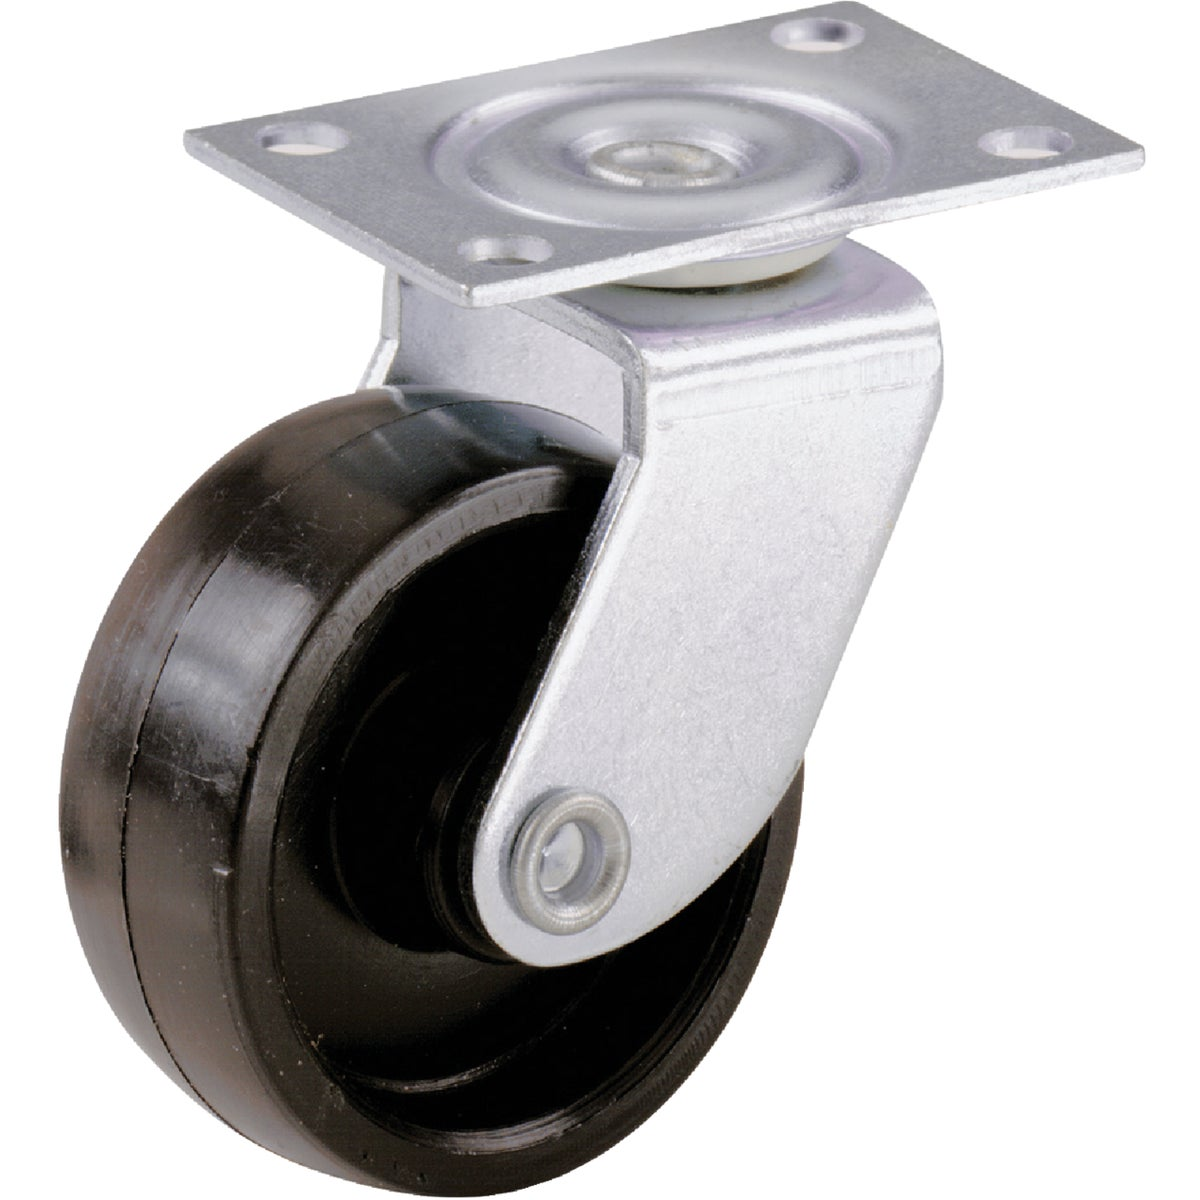 "4PL 1-1/4"" PLATE CASTER - 206032 by Shepherd Hardware"